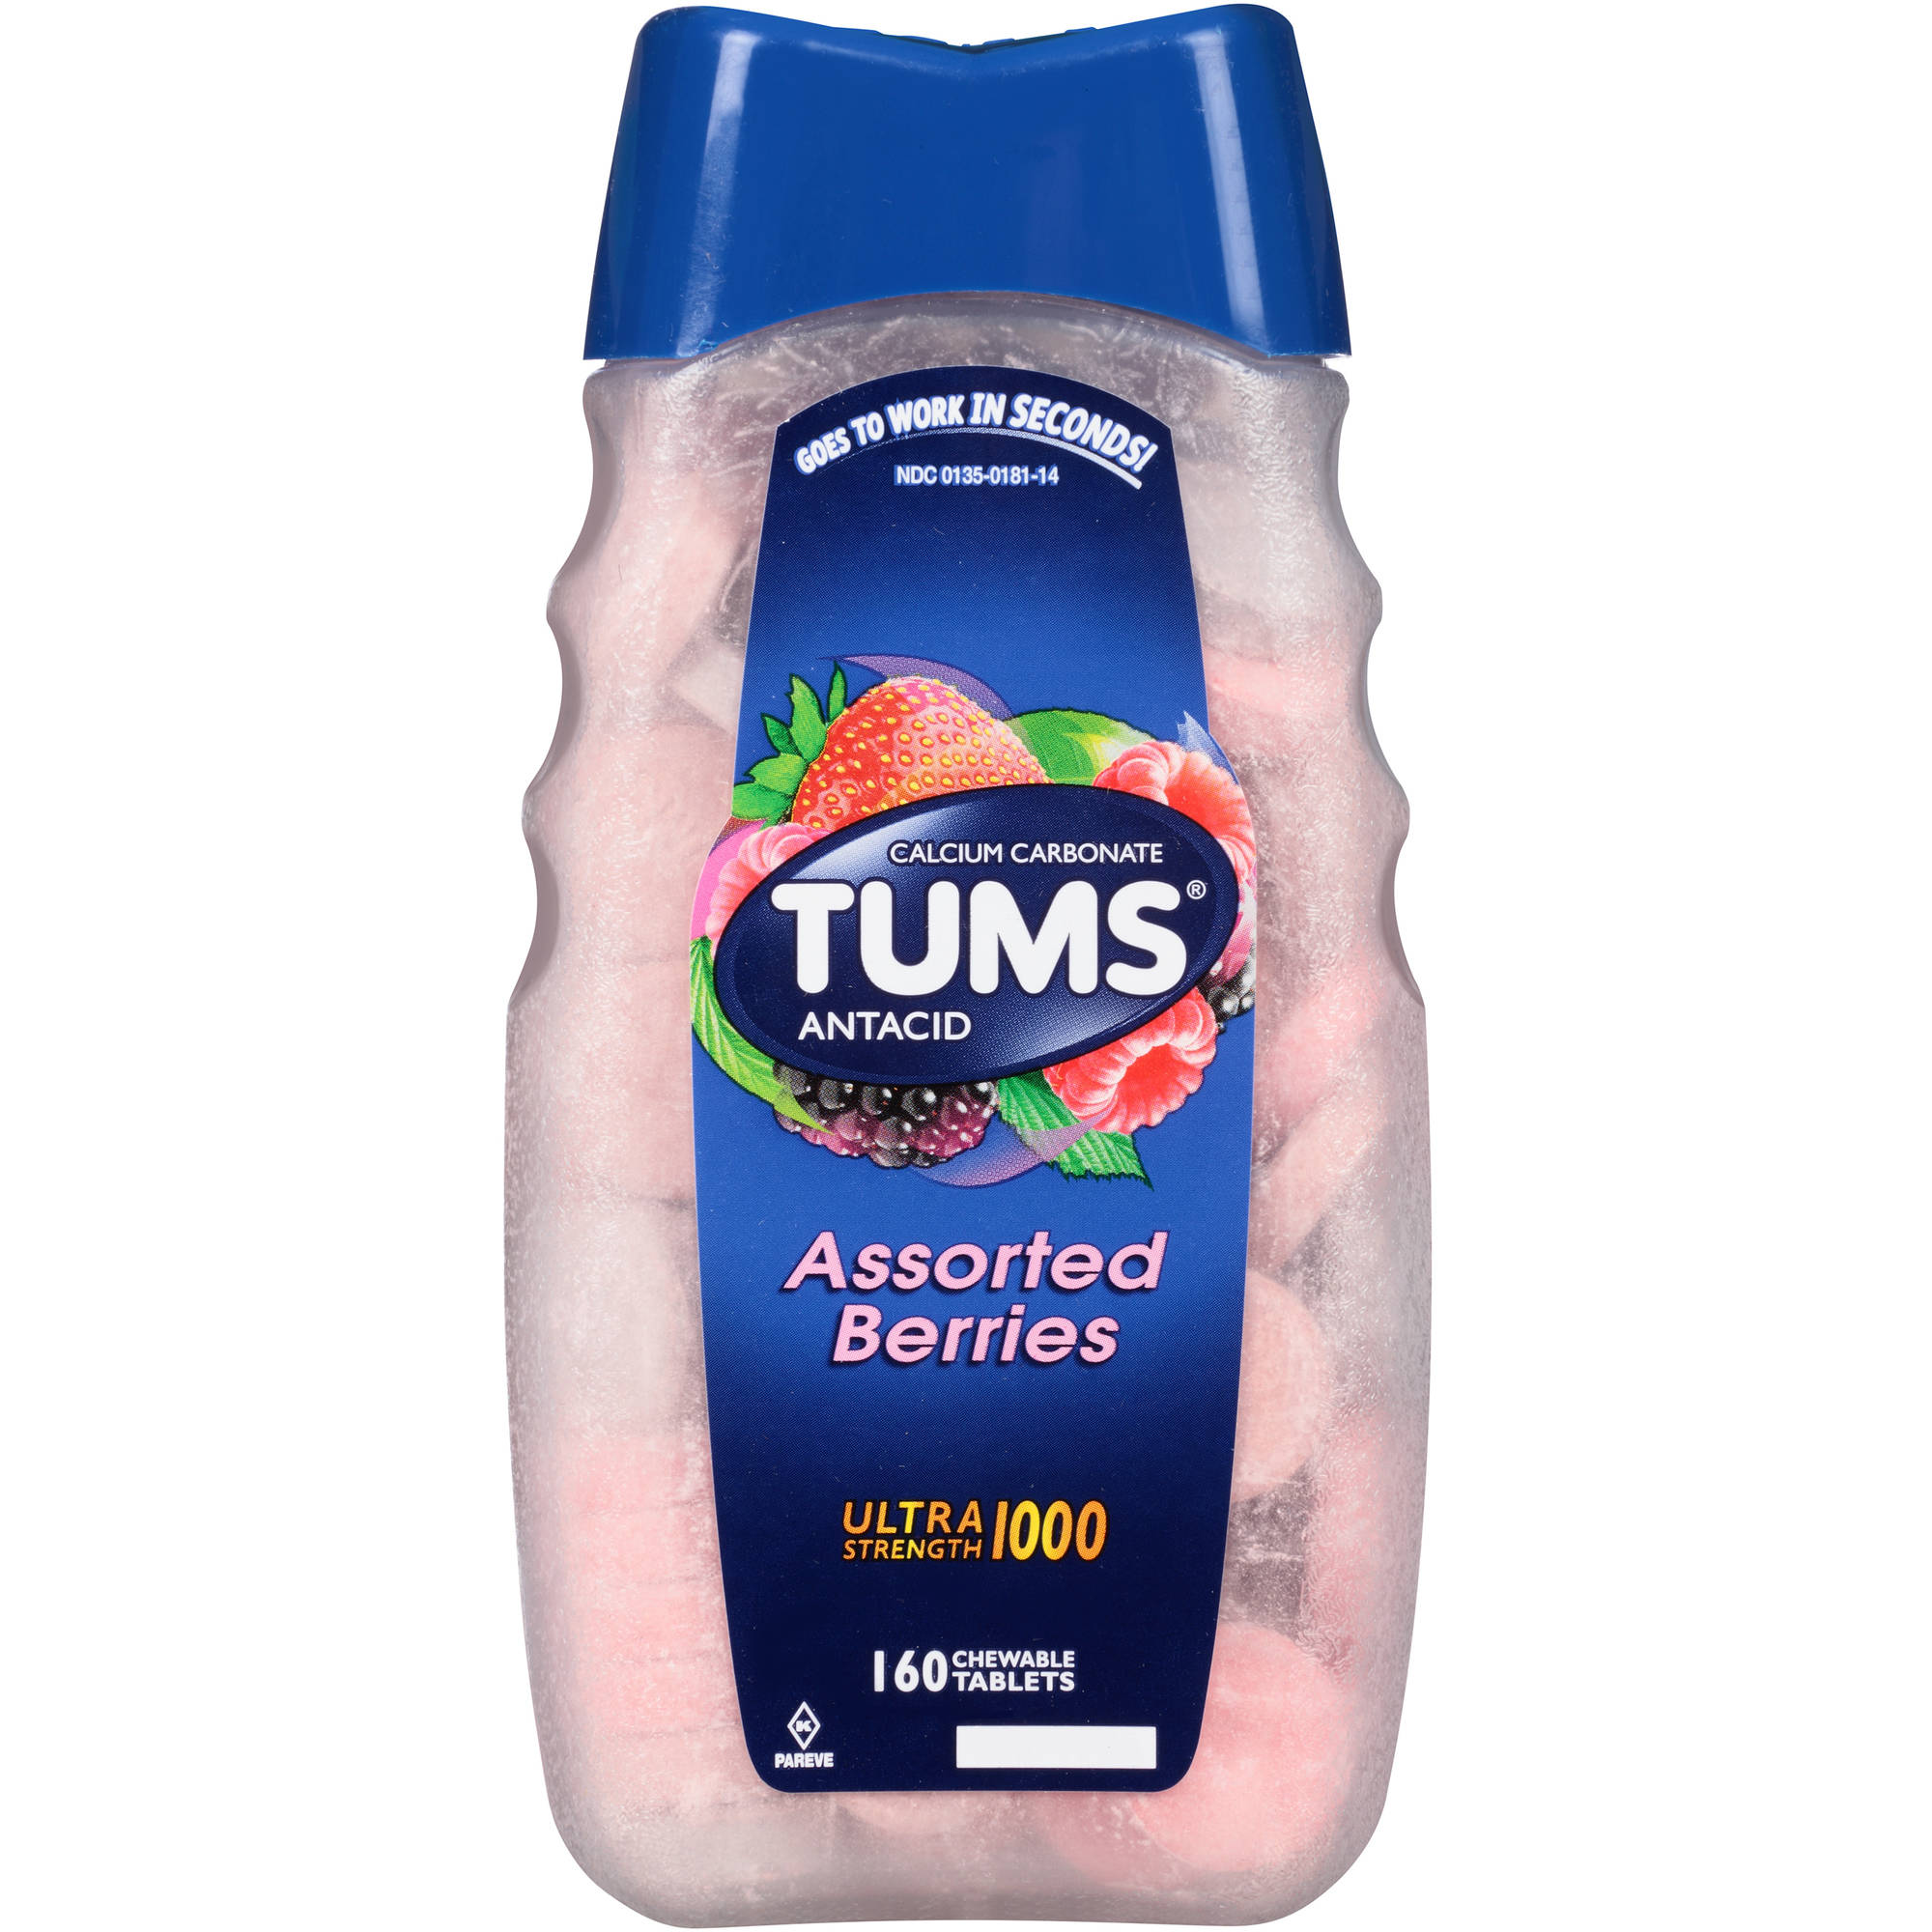 TUMS Antacid Ultra Strength 1000 Assorted Berries Chewable Tablets, 160 Count